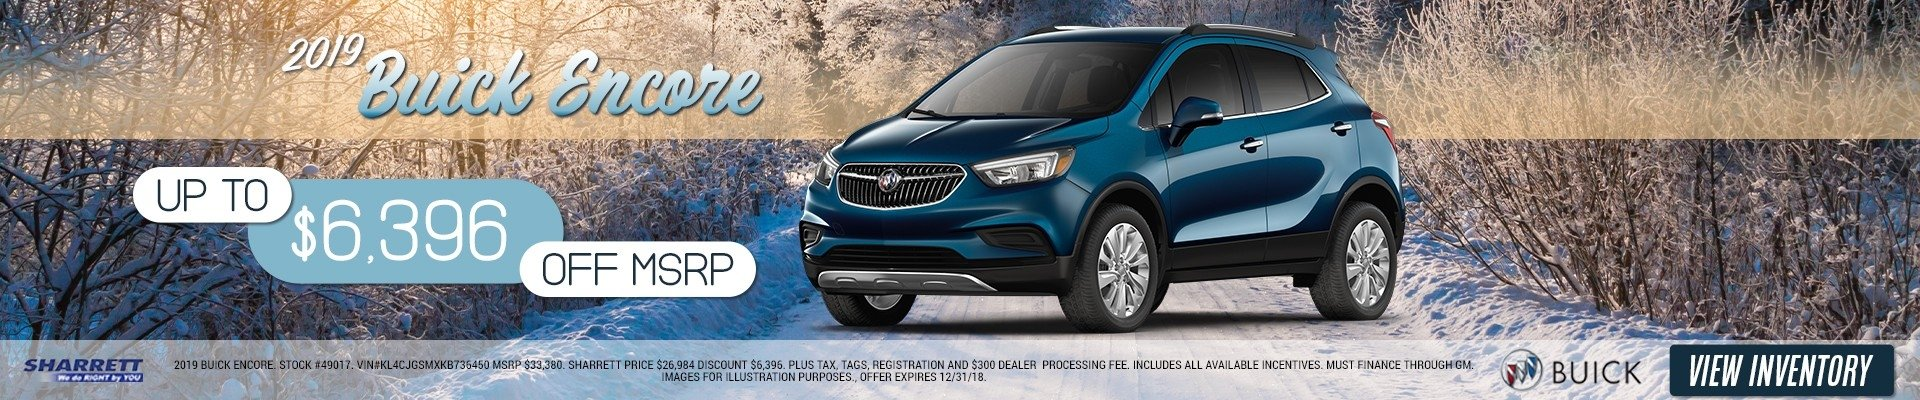 Up to $6,396 off MSRP on a 2019 Buick Encore